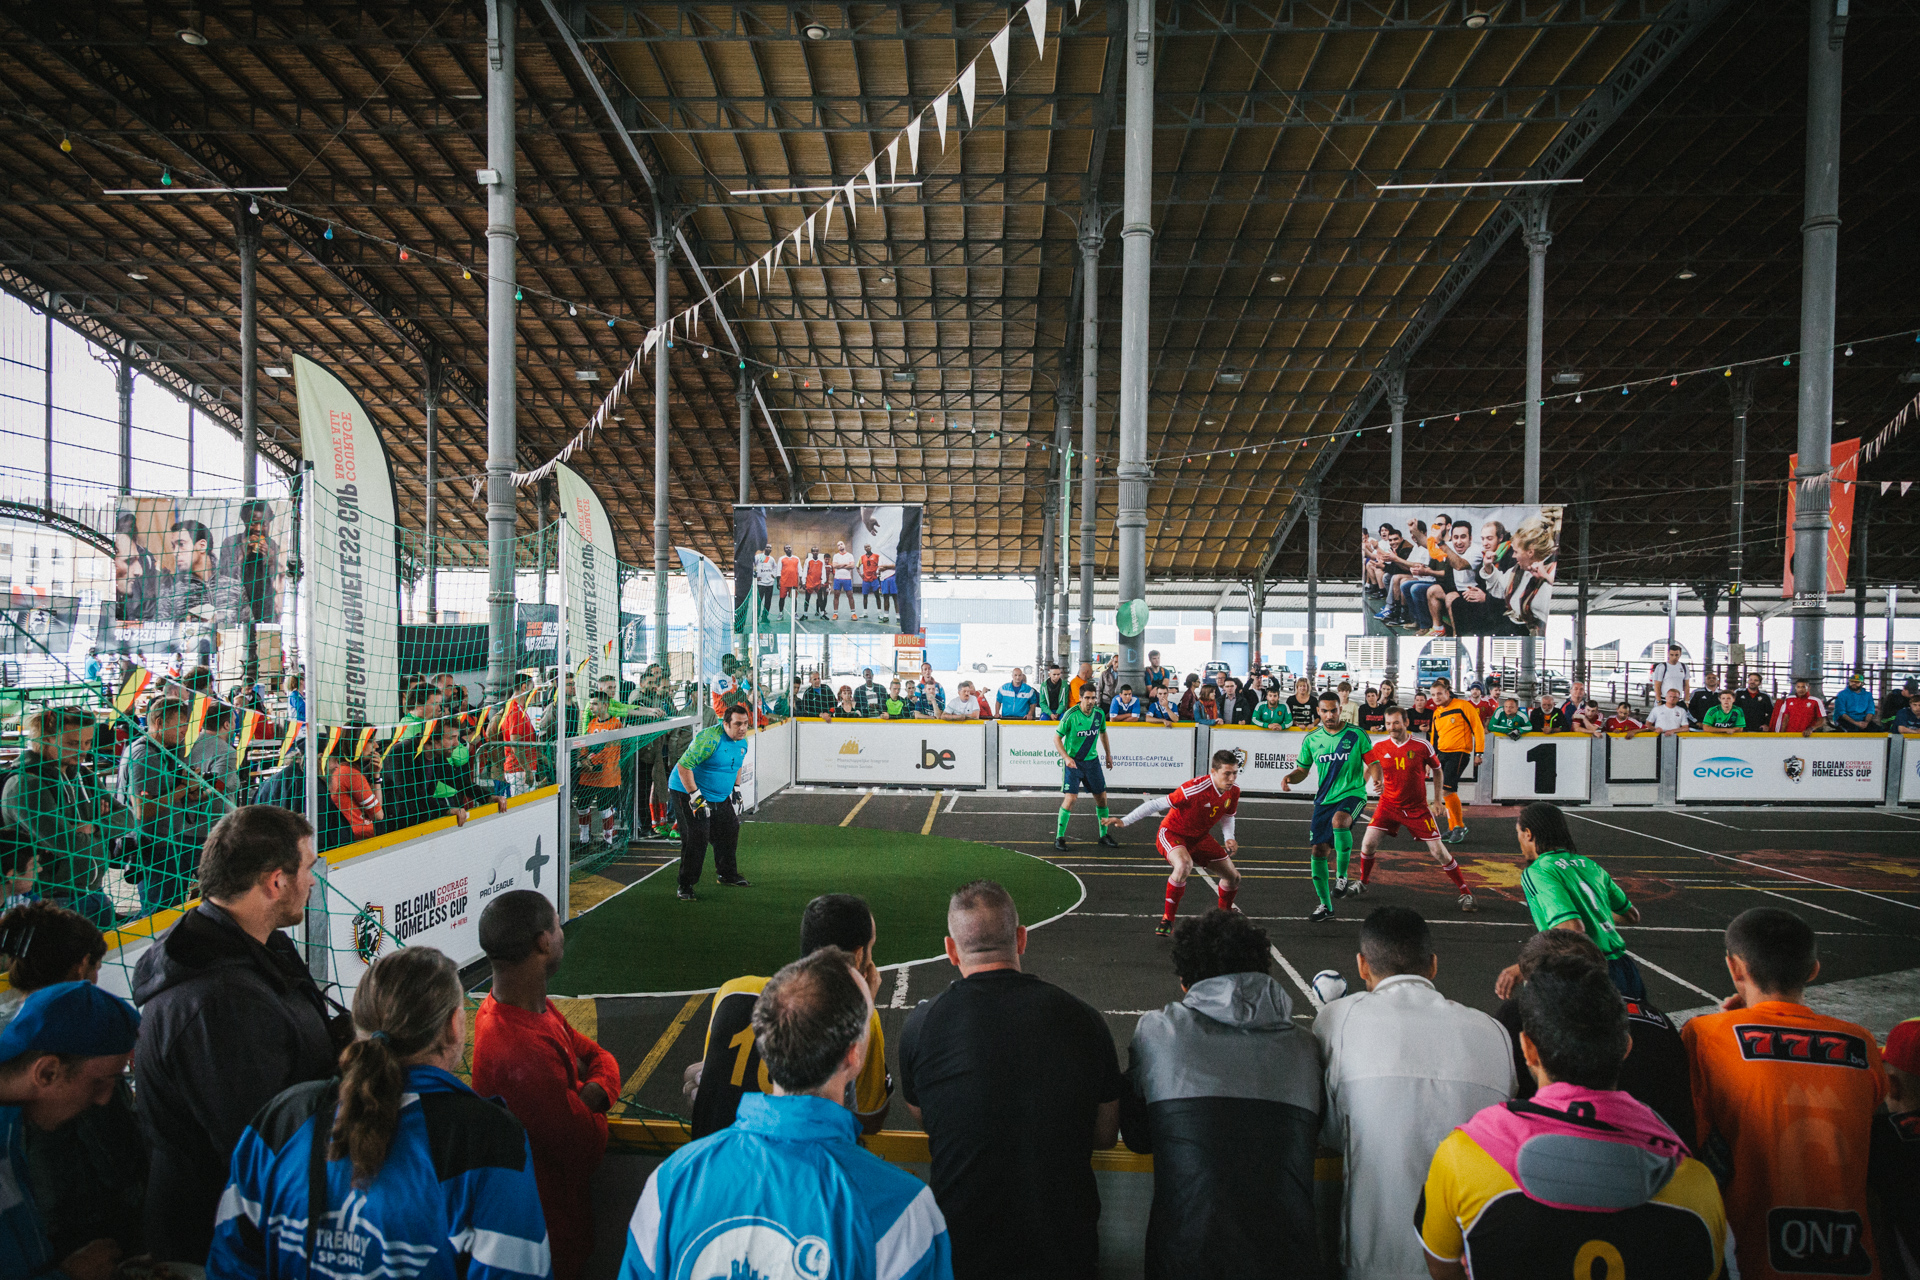 2016_BelgianHomelessCup_lores-104.jpg